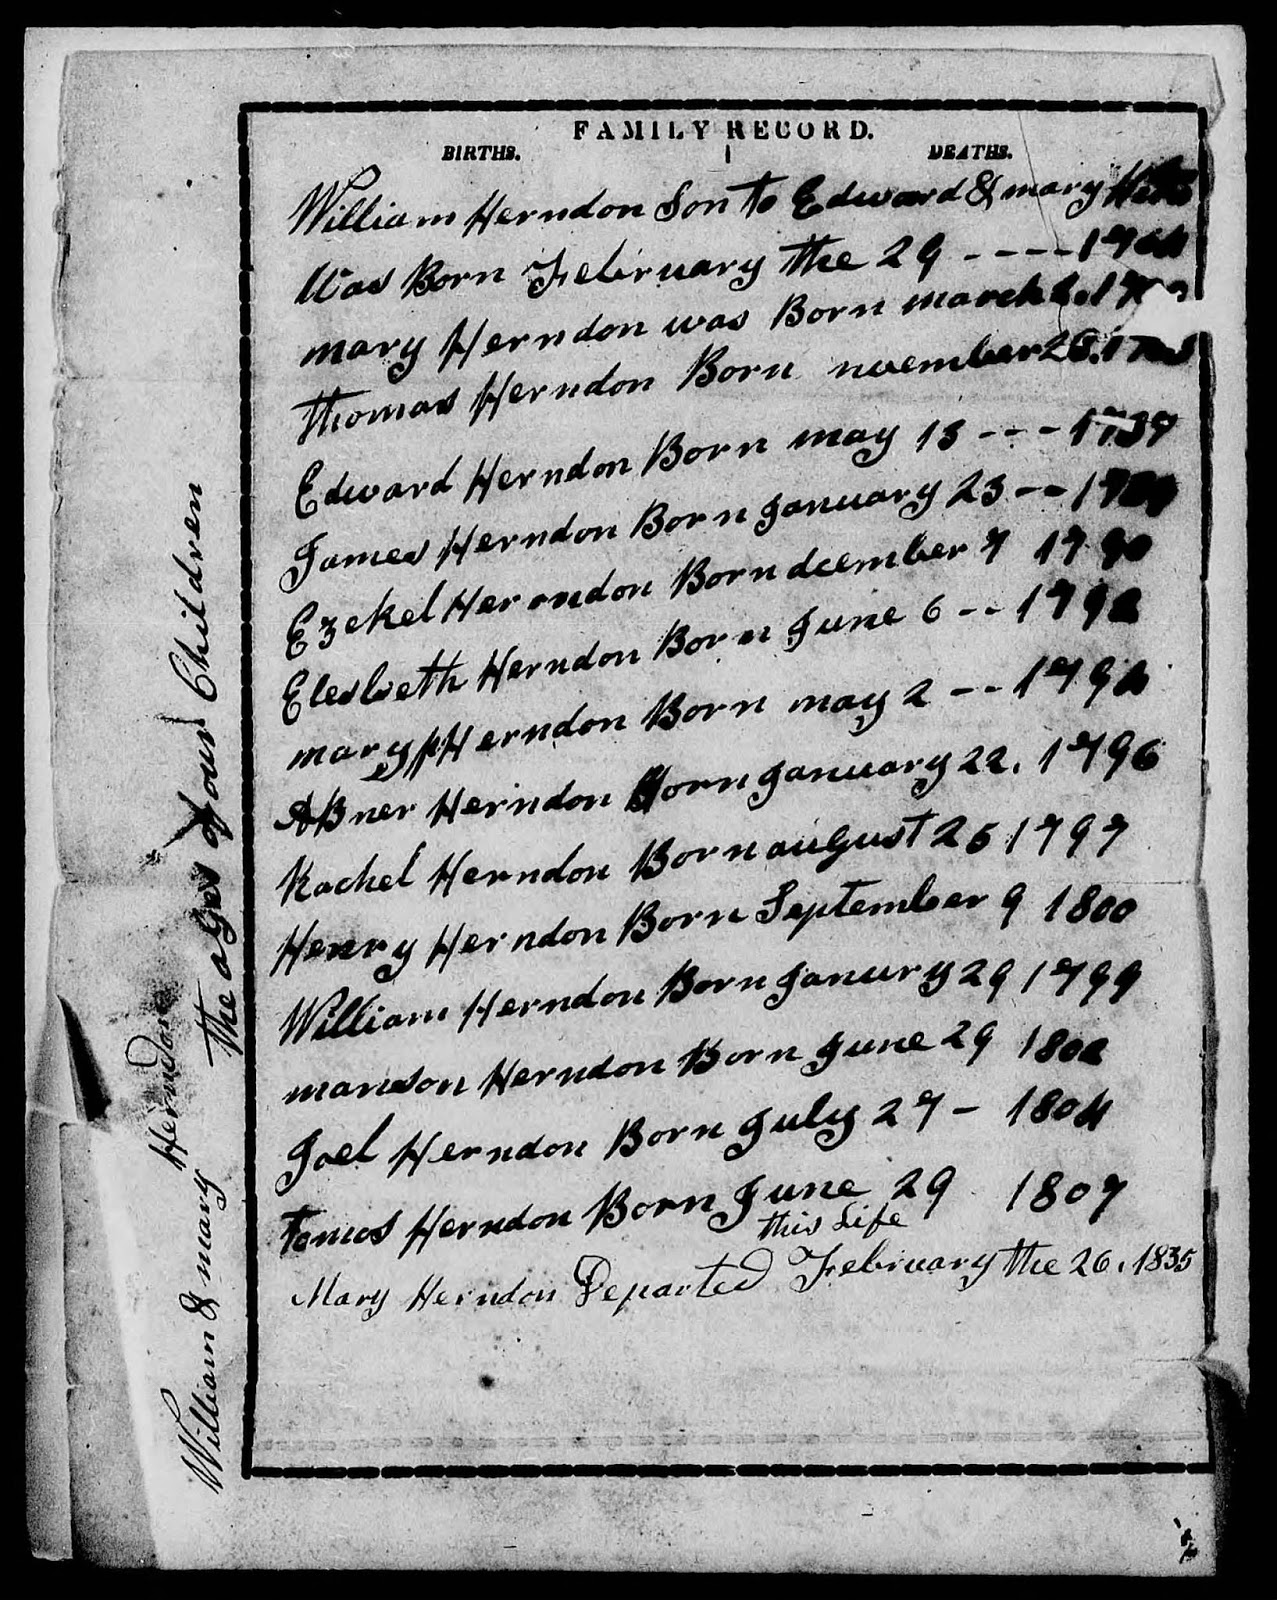 From Herndon Family Bible in William Pendleton Herndon's pension application http://jollettetc.blogspot.com